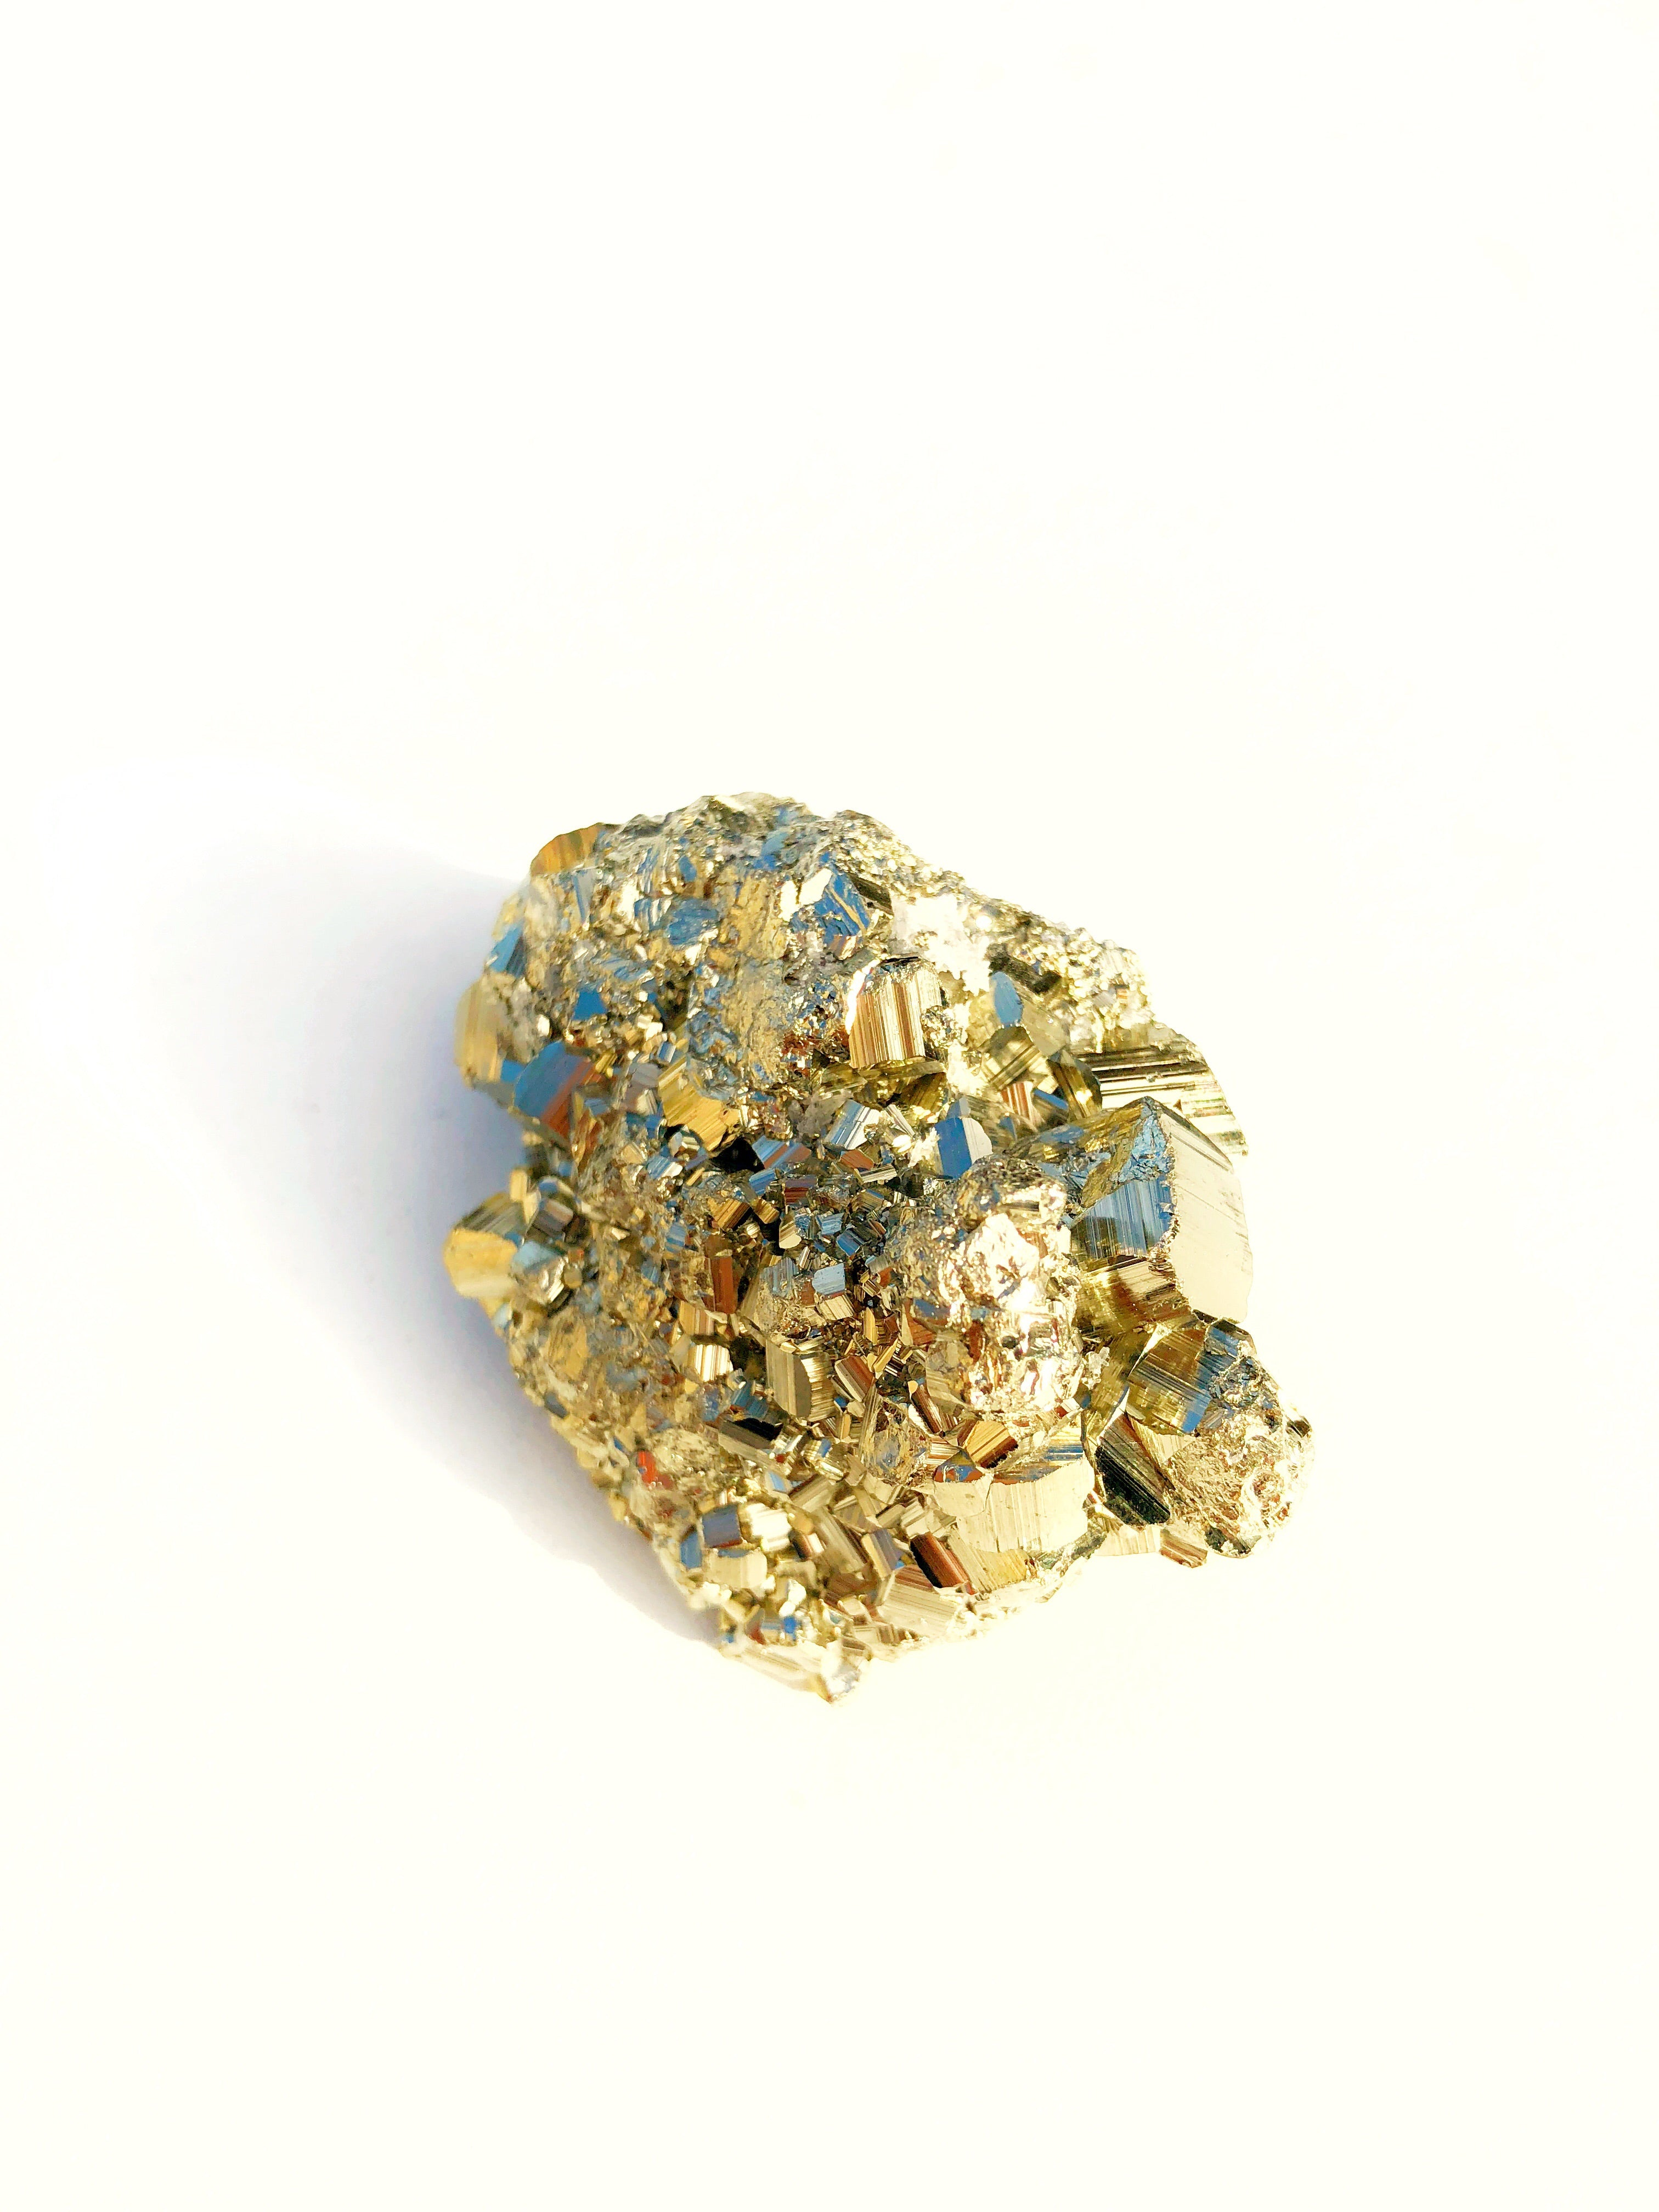 LITTLE PAPER LANE CRYSTALS-Pyrite (1#)